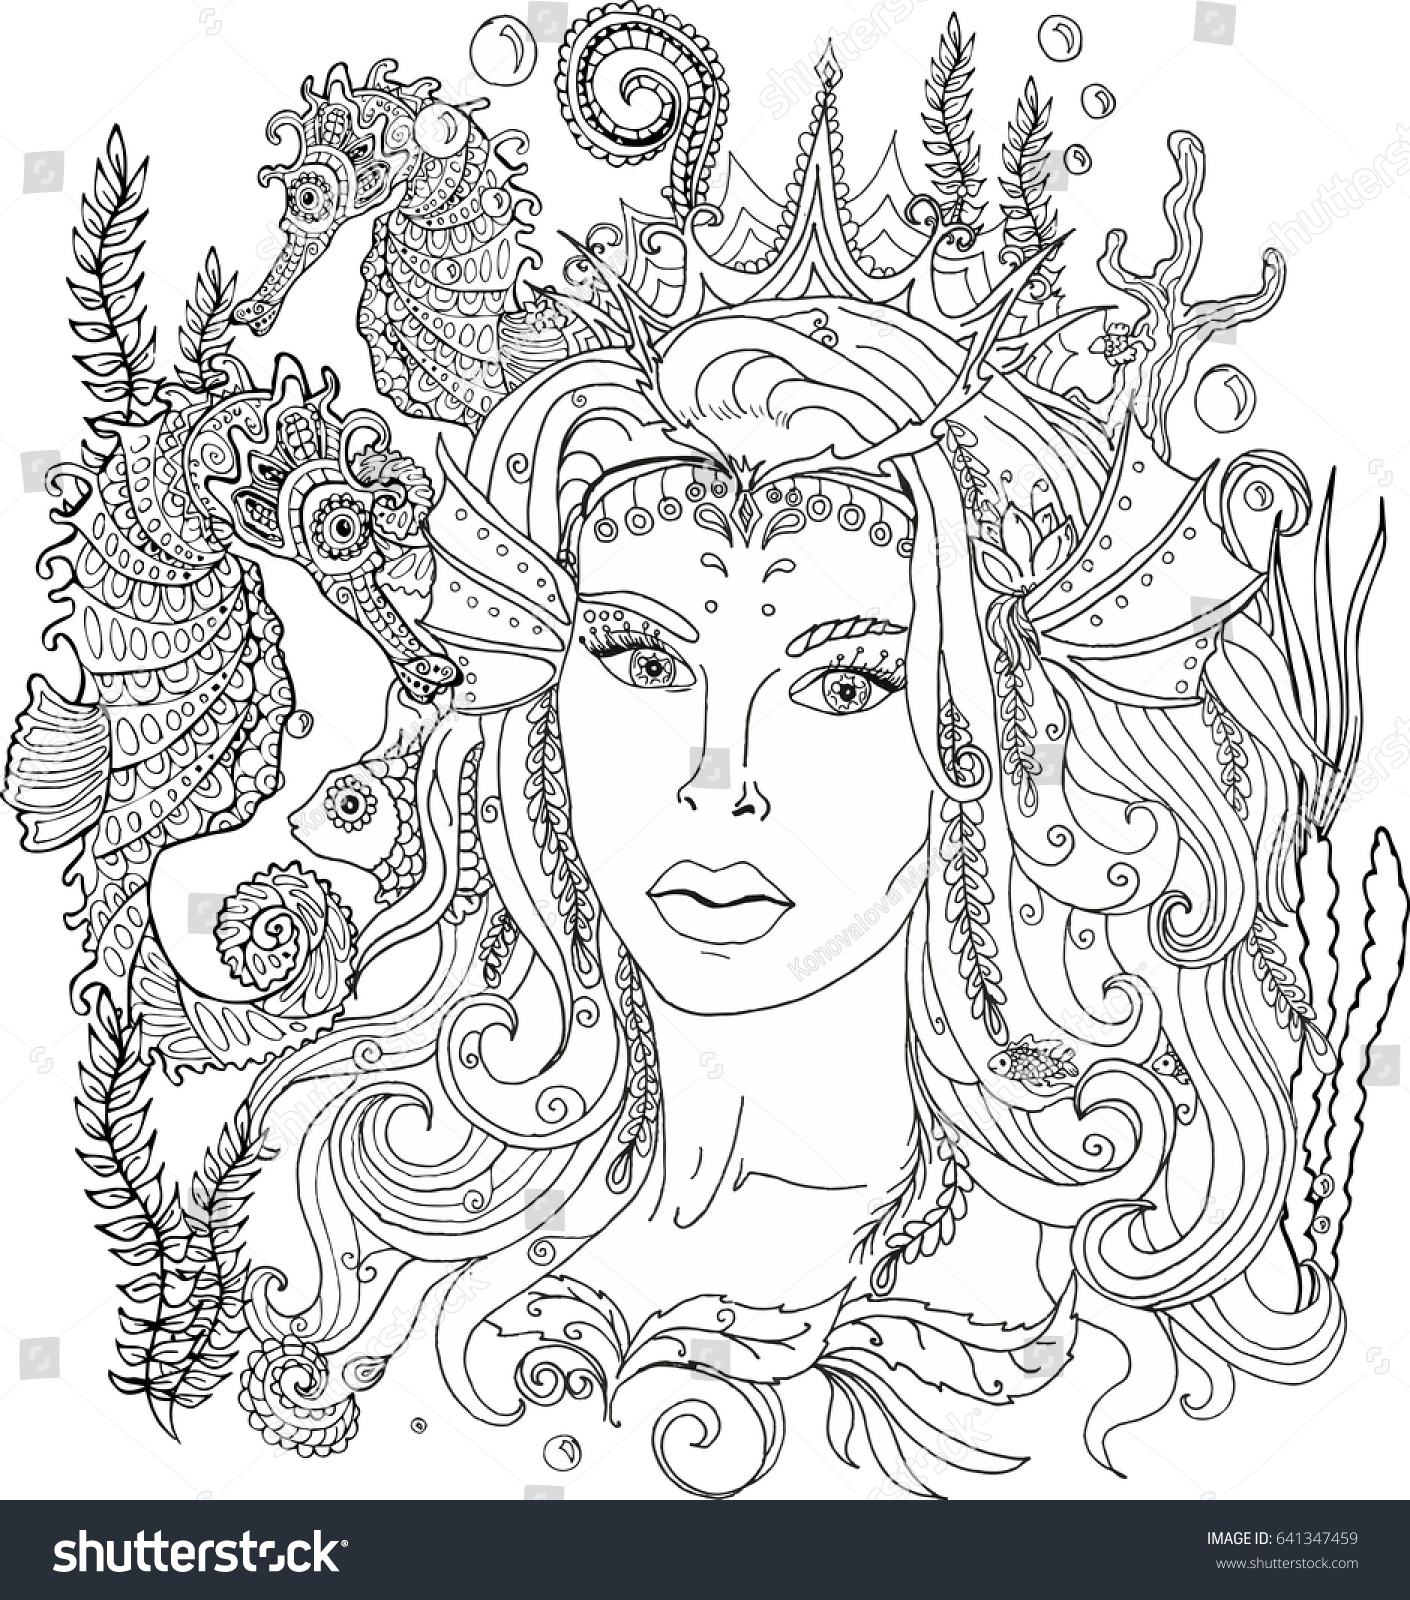 1410x1600 Adult Coloring Prayers To Color